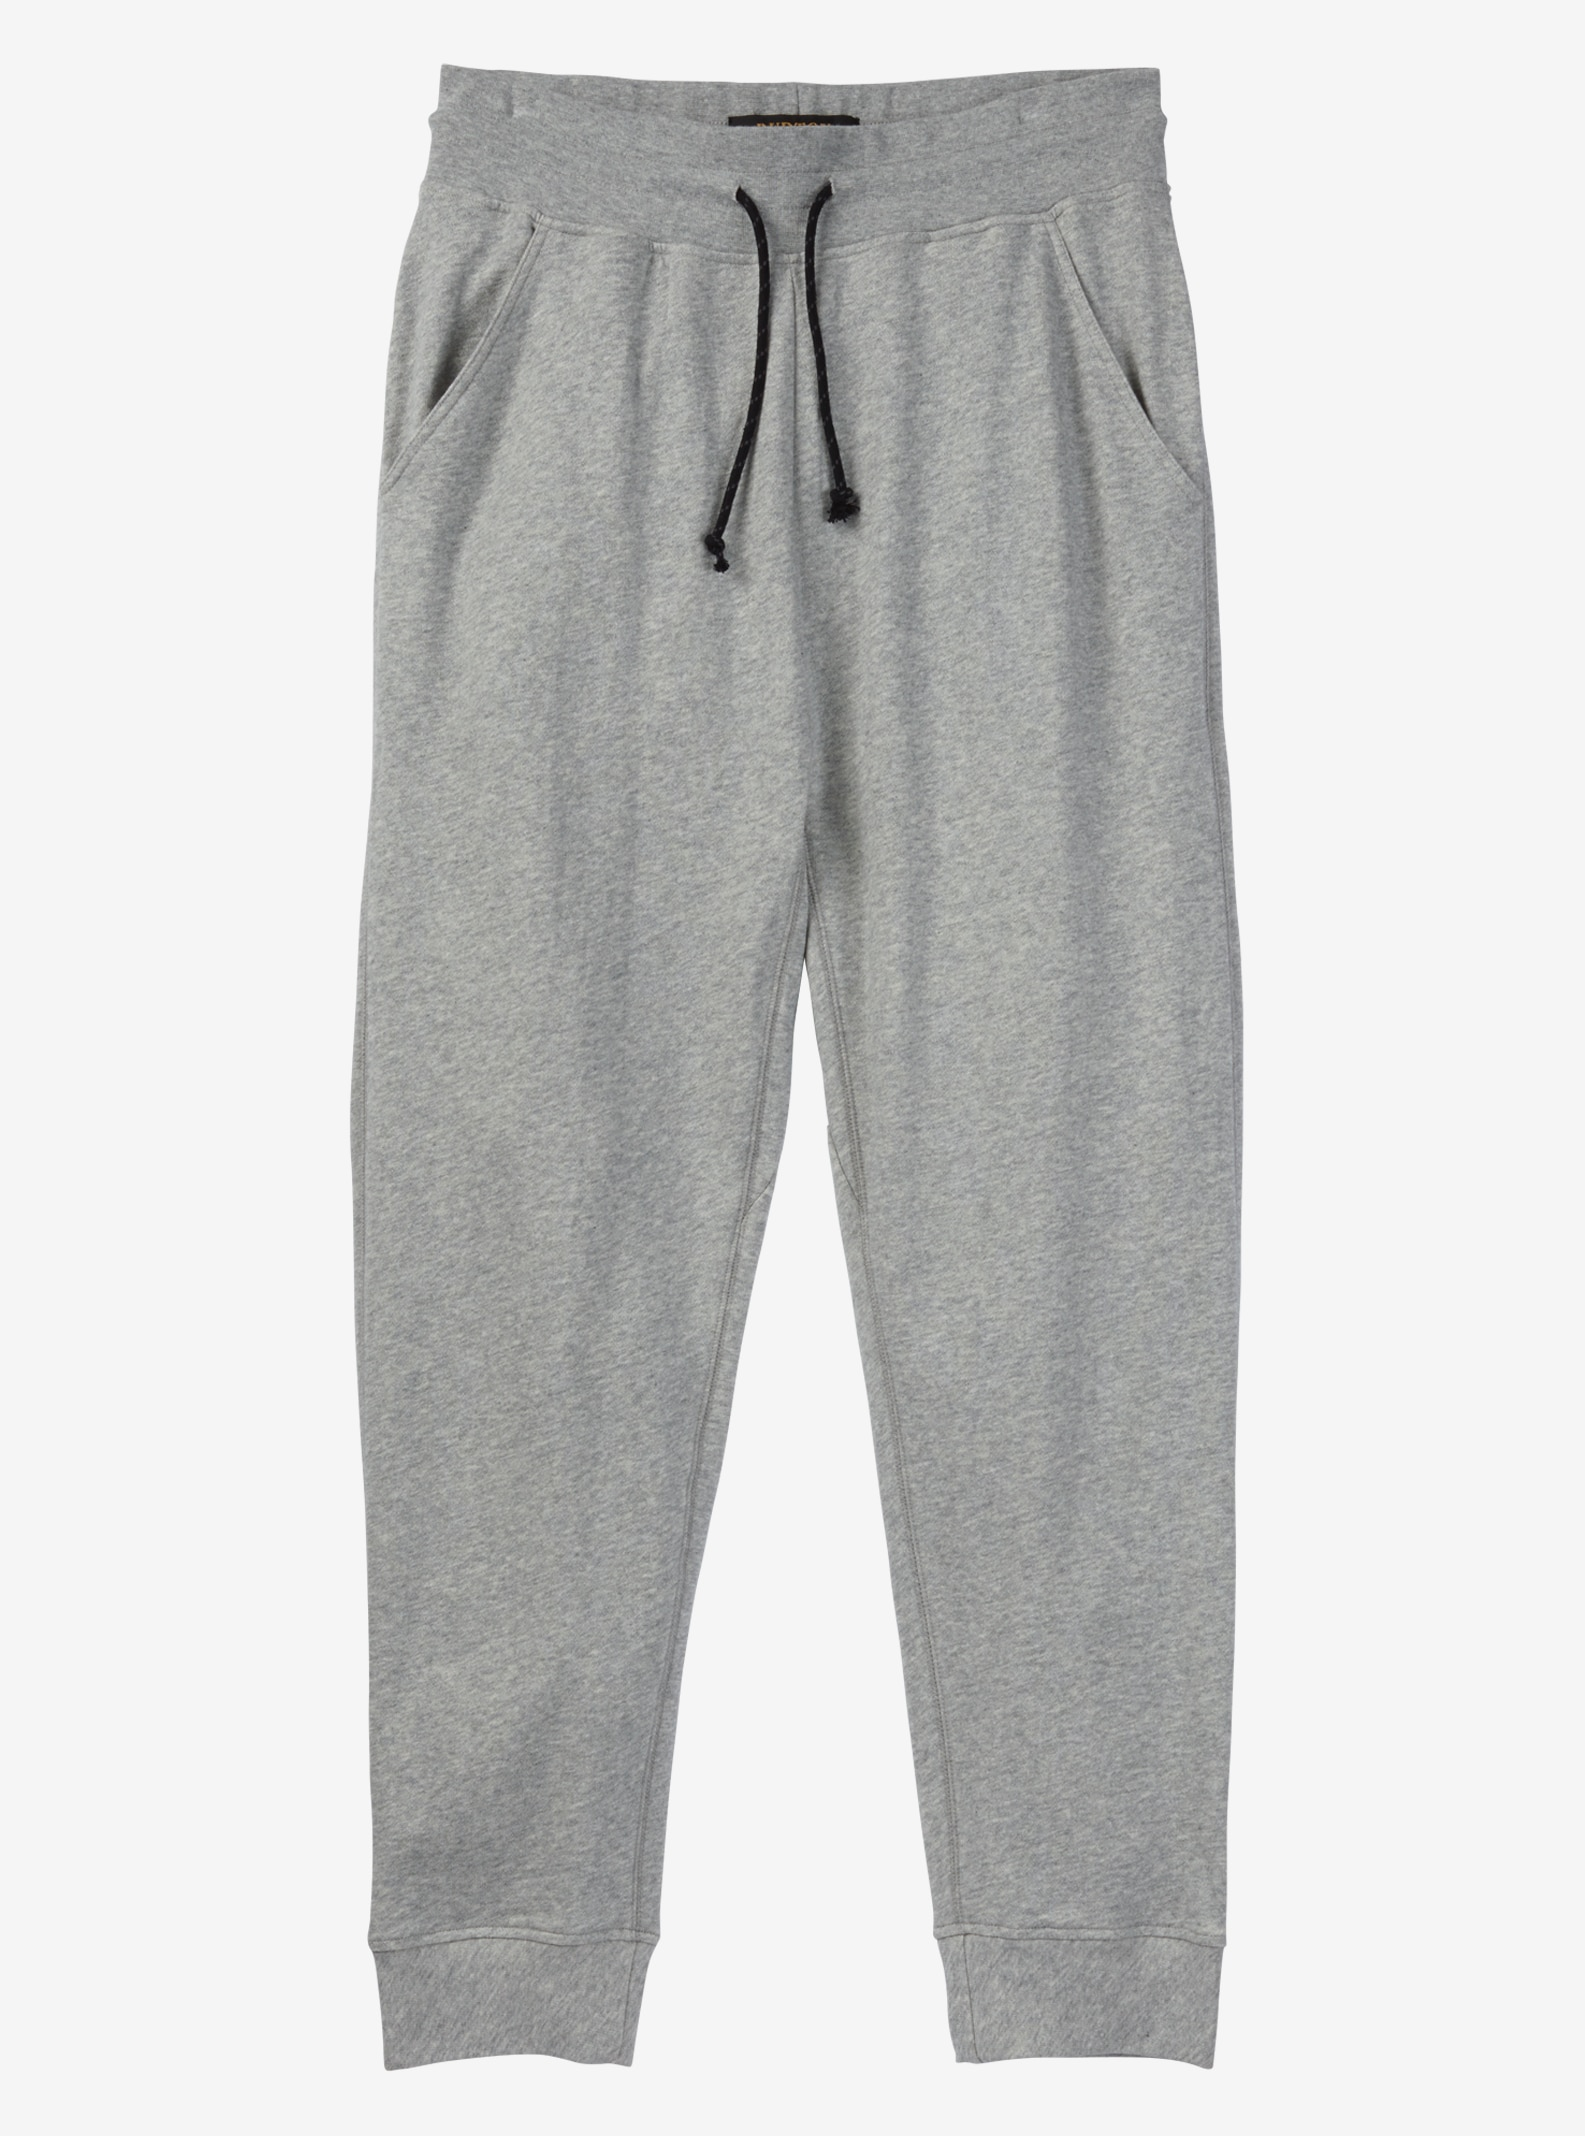 Burton Holston Lite Pant shown in Gray Heather